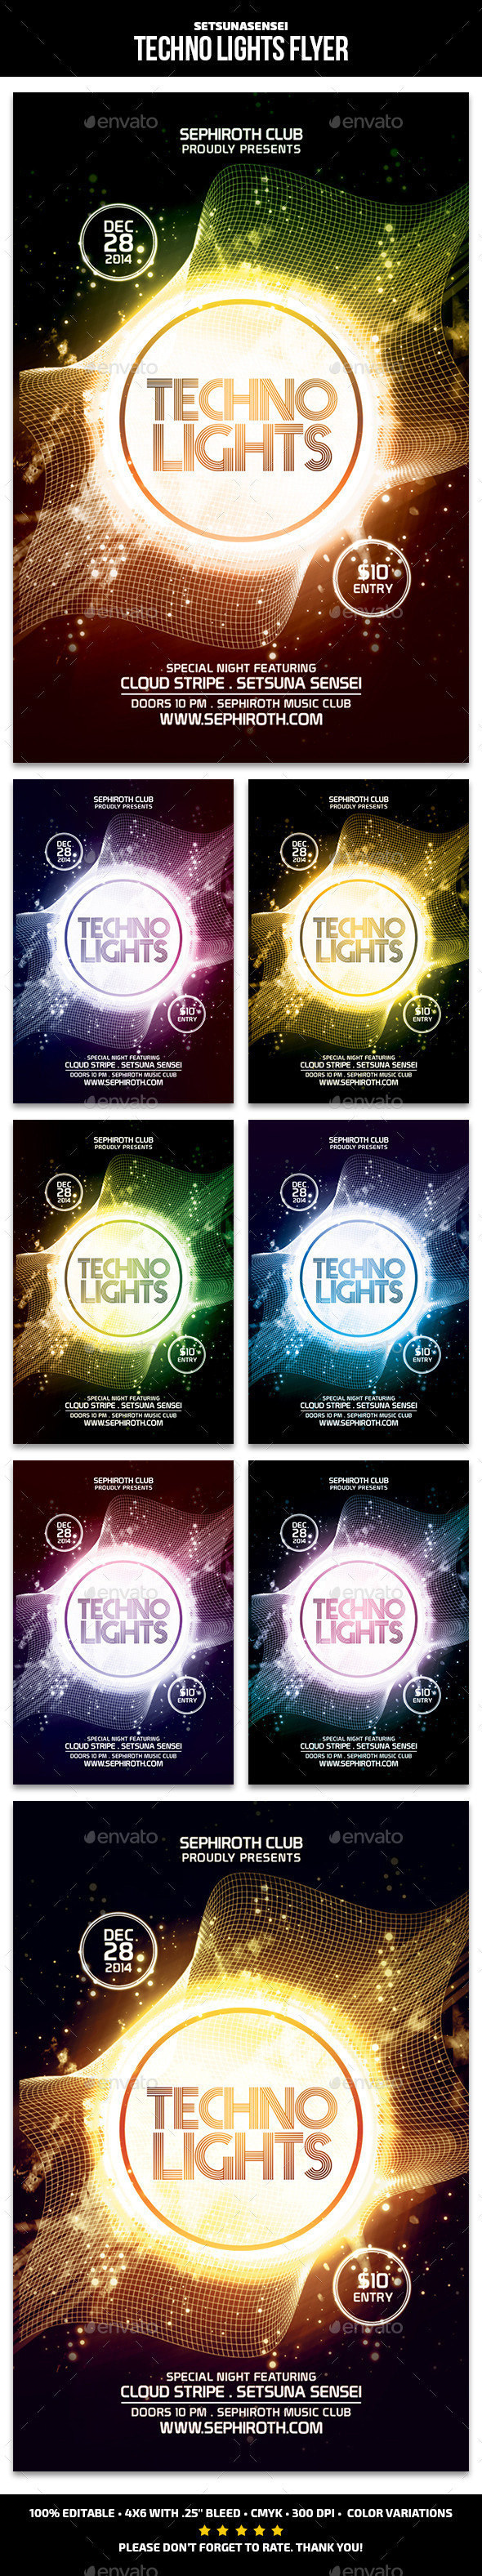 Techno Lights Flyer - Clubs & Parties Events